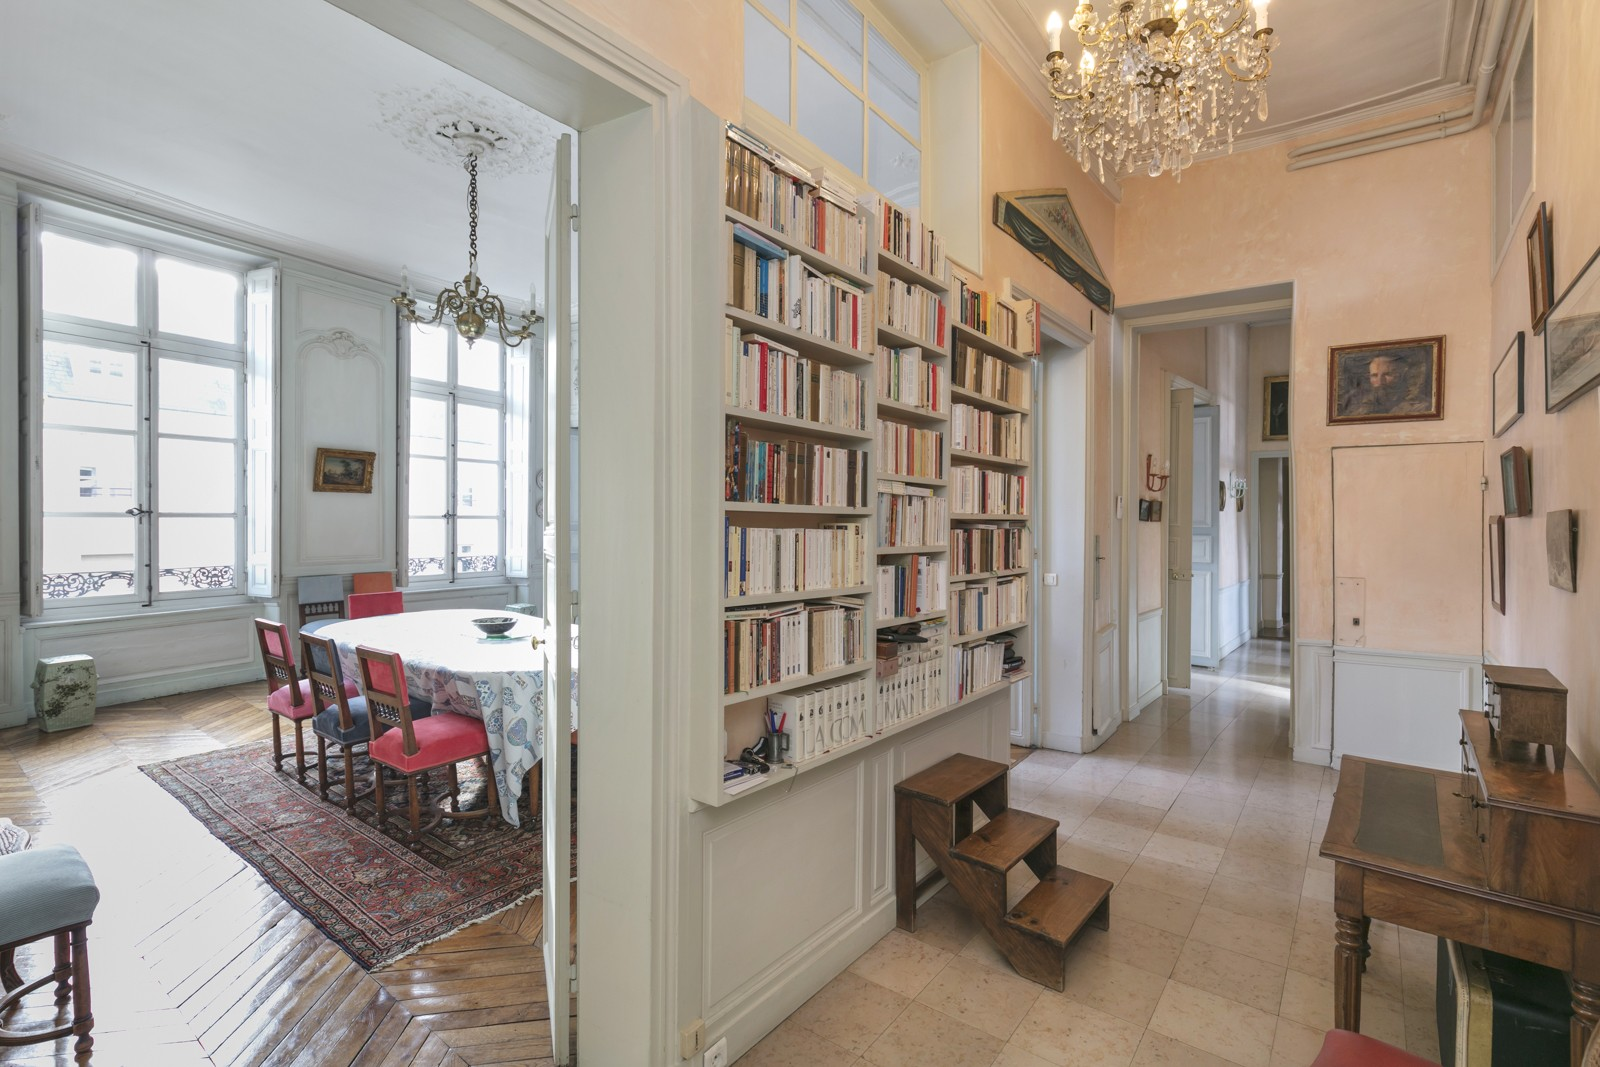 EXCEPTIONAL APARTMENT, 4 BEDROOMS, RER A 10 MIN AWAY